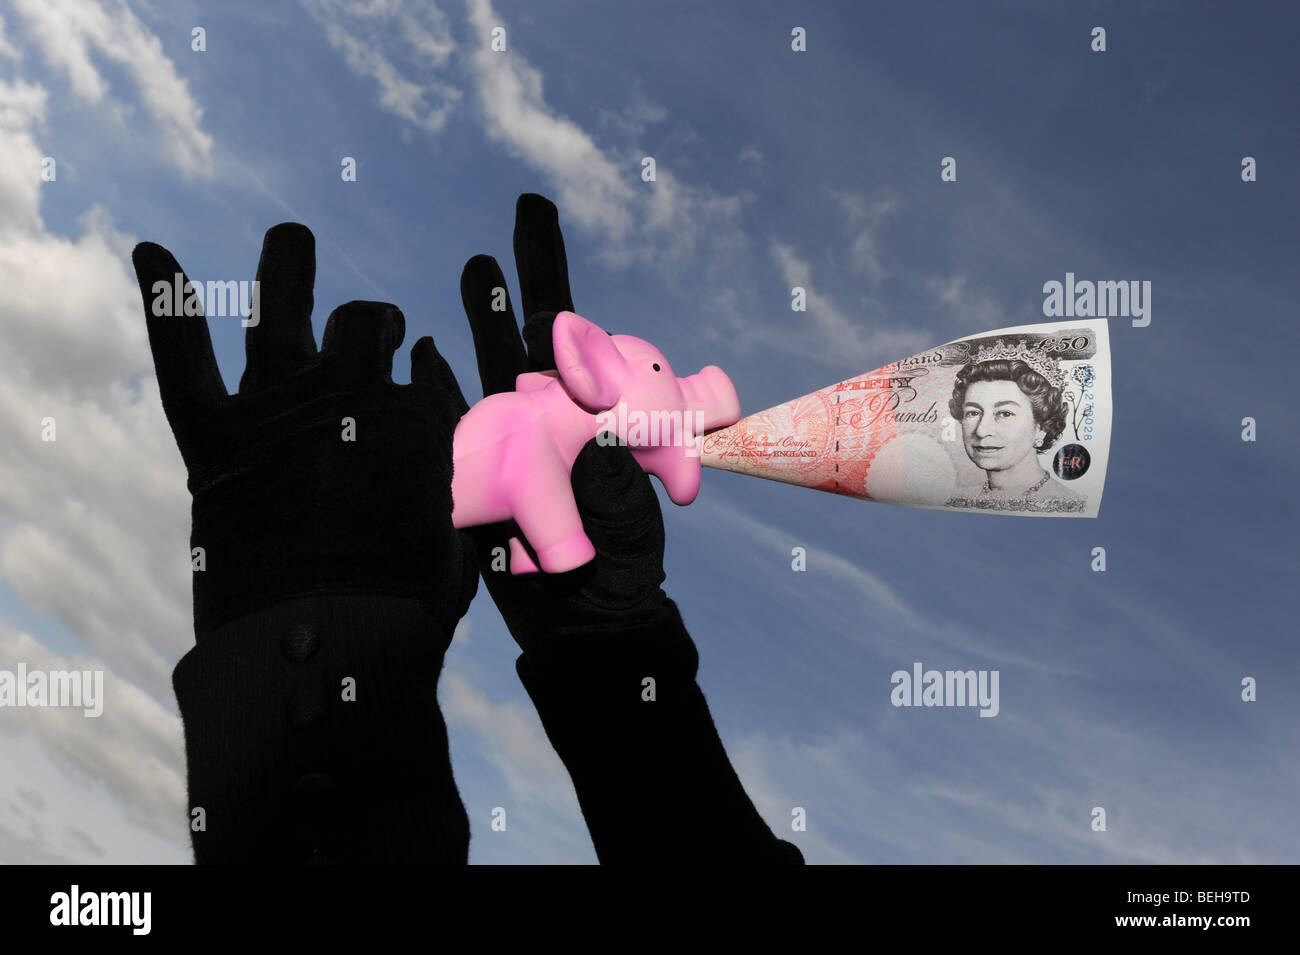 Financial squeeze on savings in piggy bank with low interest rates - Stock Image